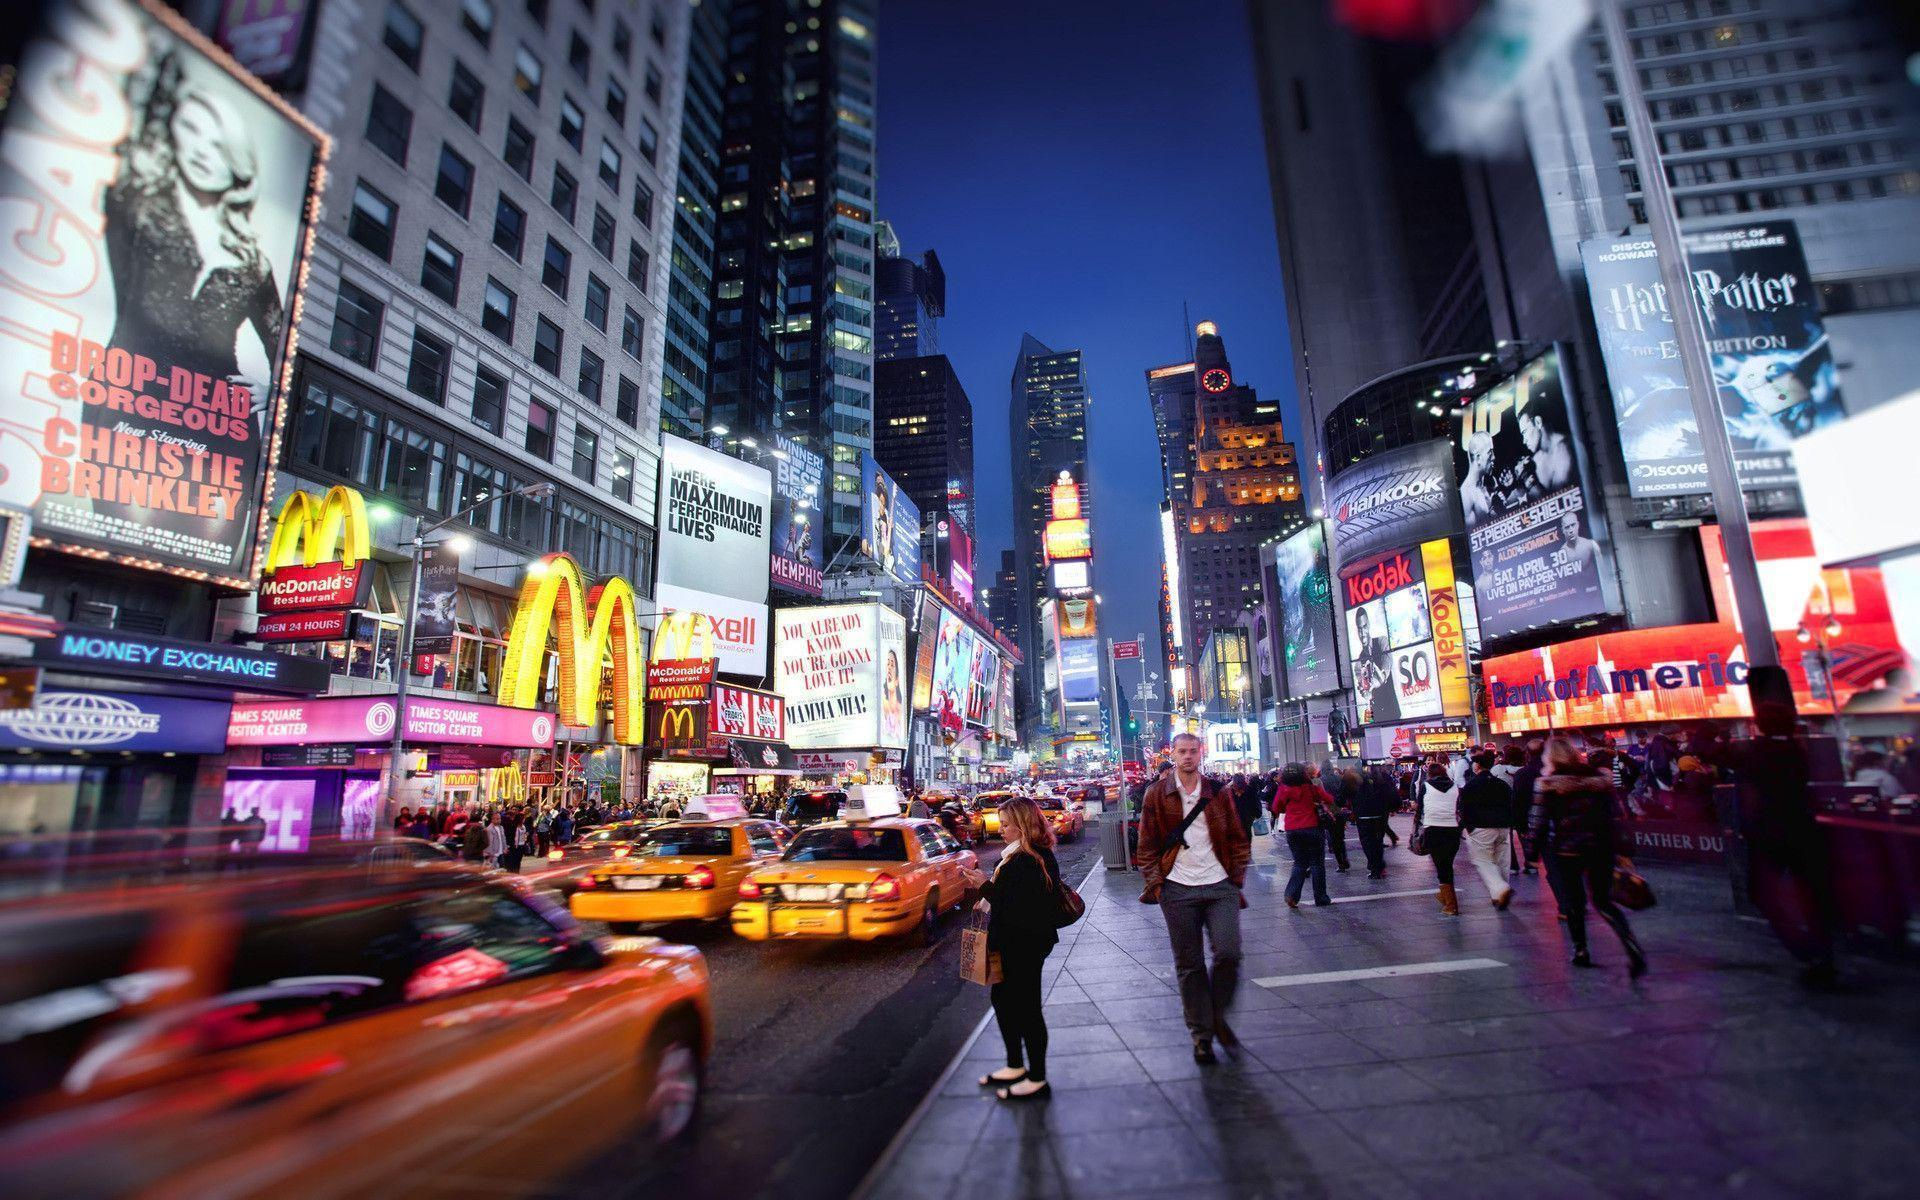 Awesome Times Square wallpapers